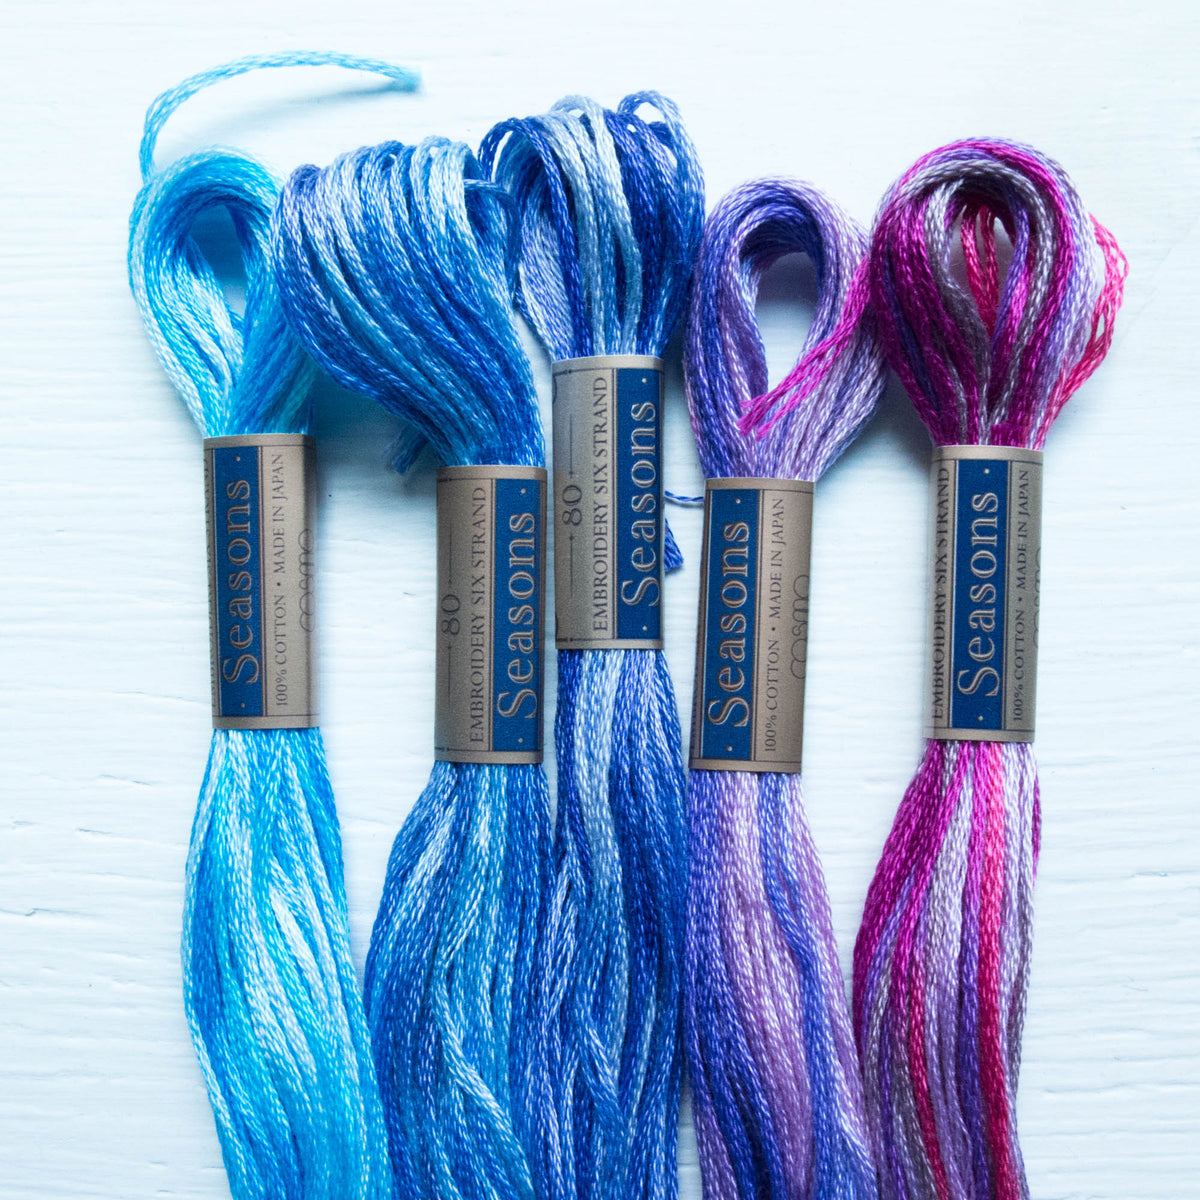 COSMO Seasons Variegated Embroidery Floss - 5021, 5022, 5023, 5024, 5025 Floss - Snuggly Monkey